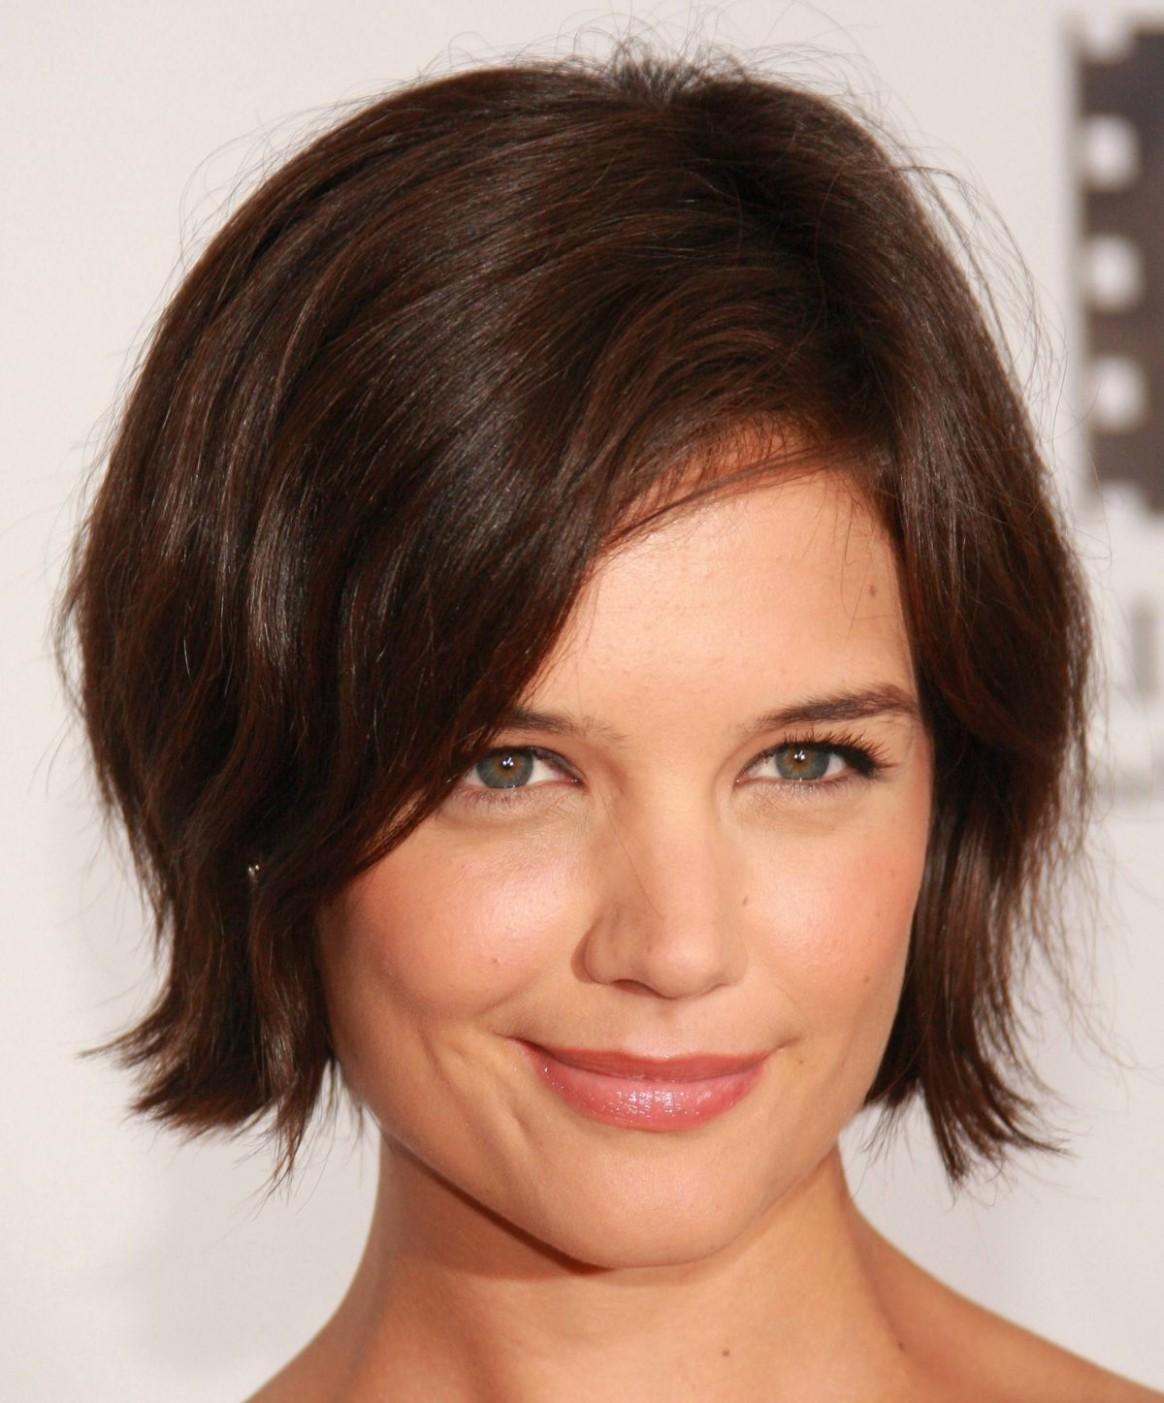 Best short hairstyles - Cute hair cut guide for round face shape